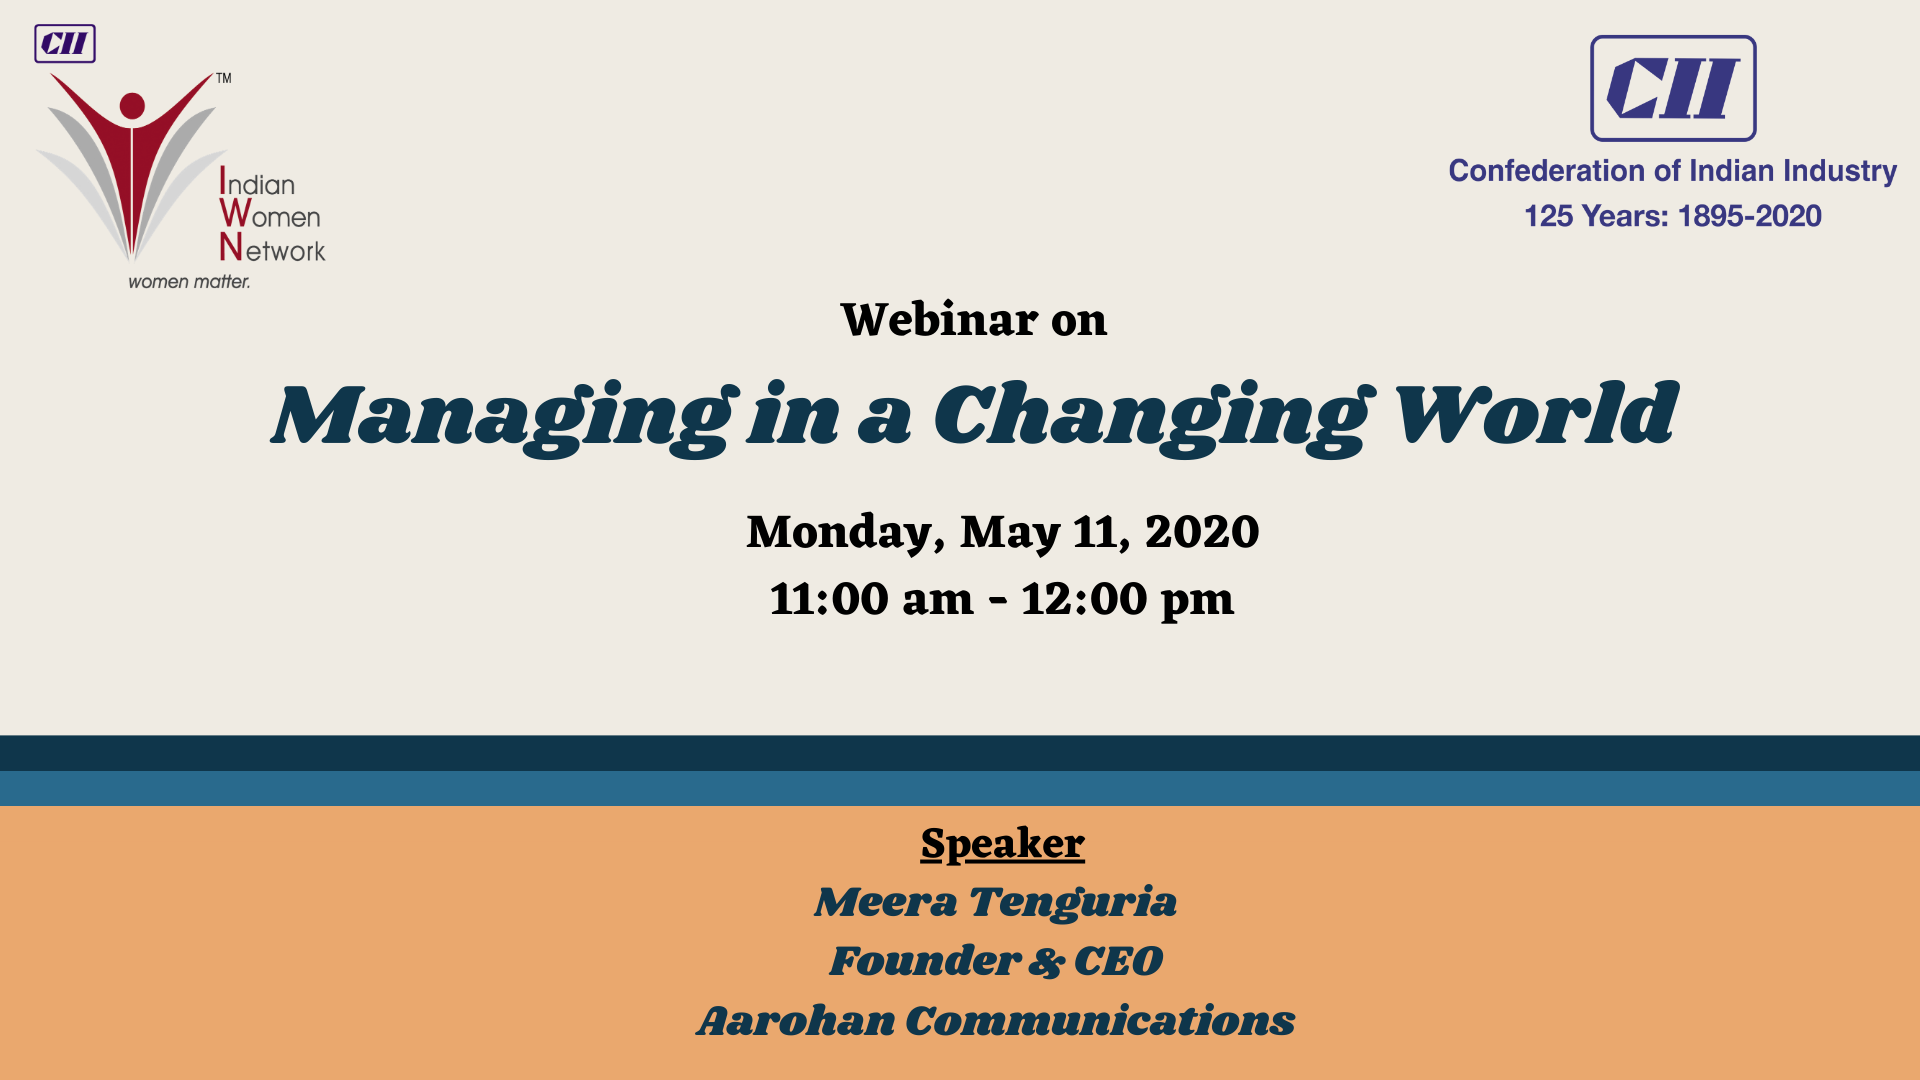 CII IWN WR - Webinar on Managing in a Changing World